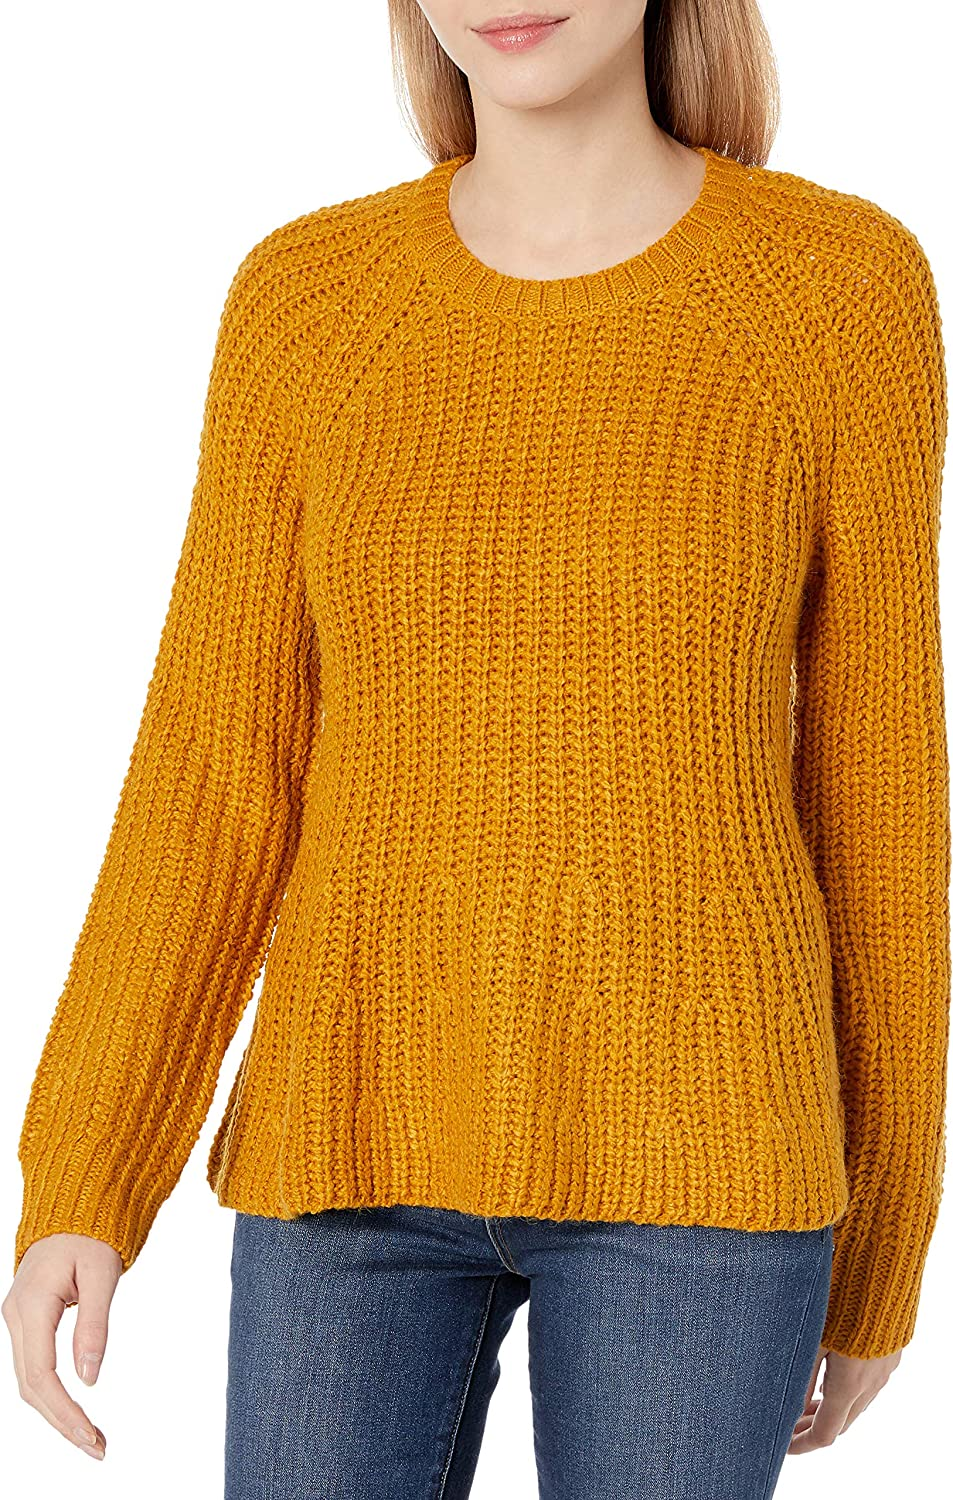 Jessica Simpson Women's Aria Sweater Swing Department store Pullover SEAL limited product Hem